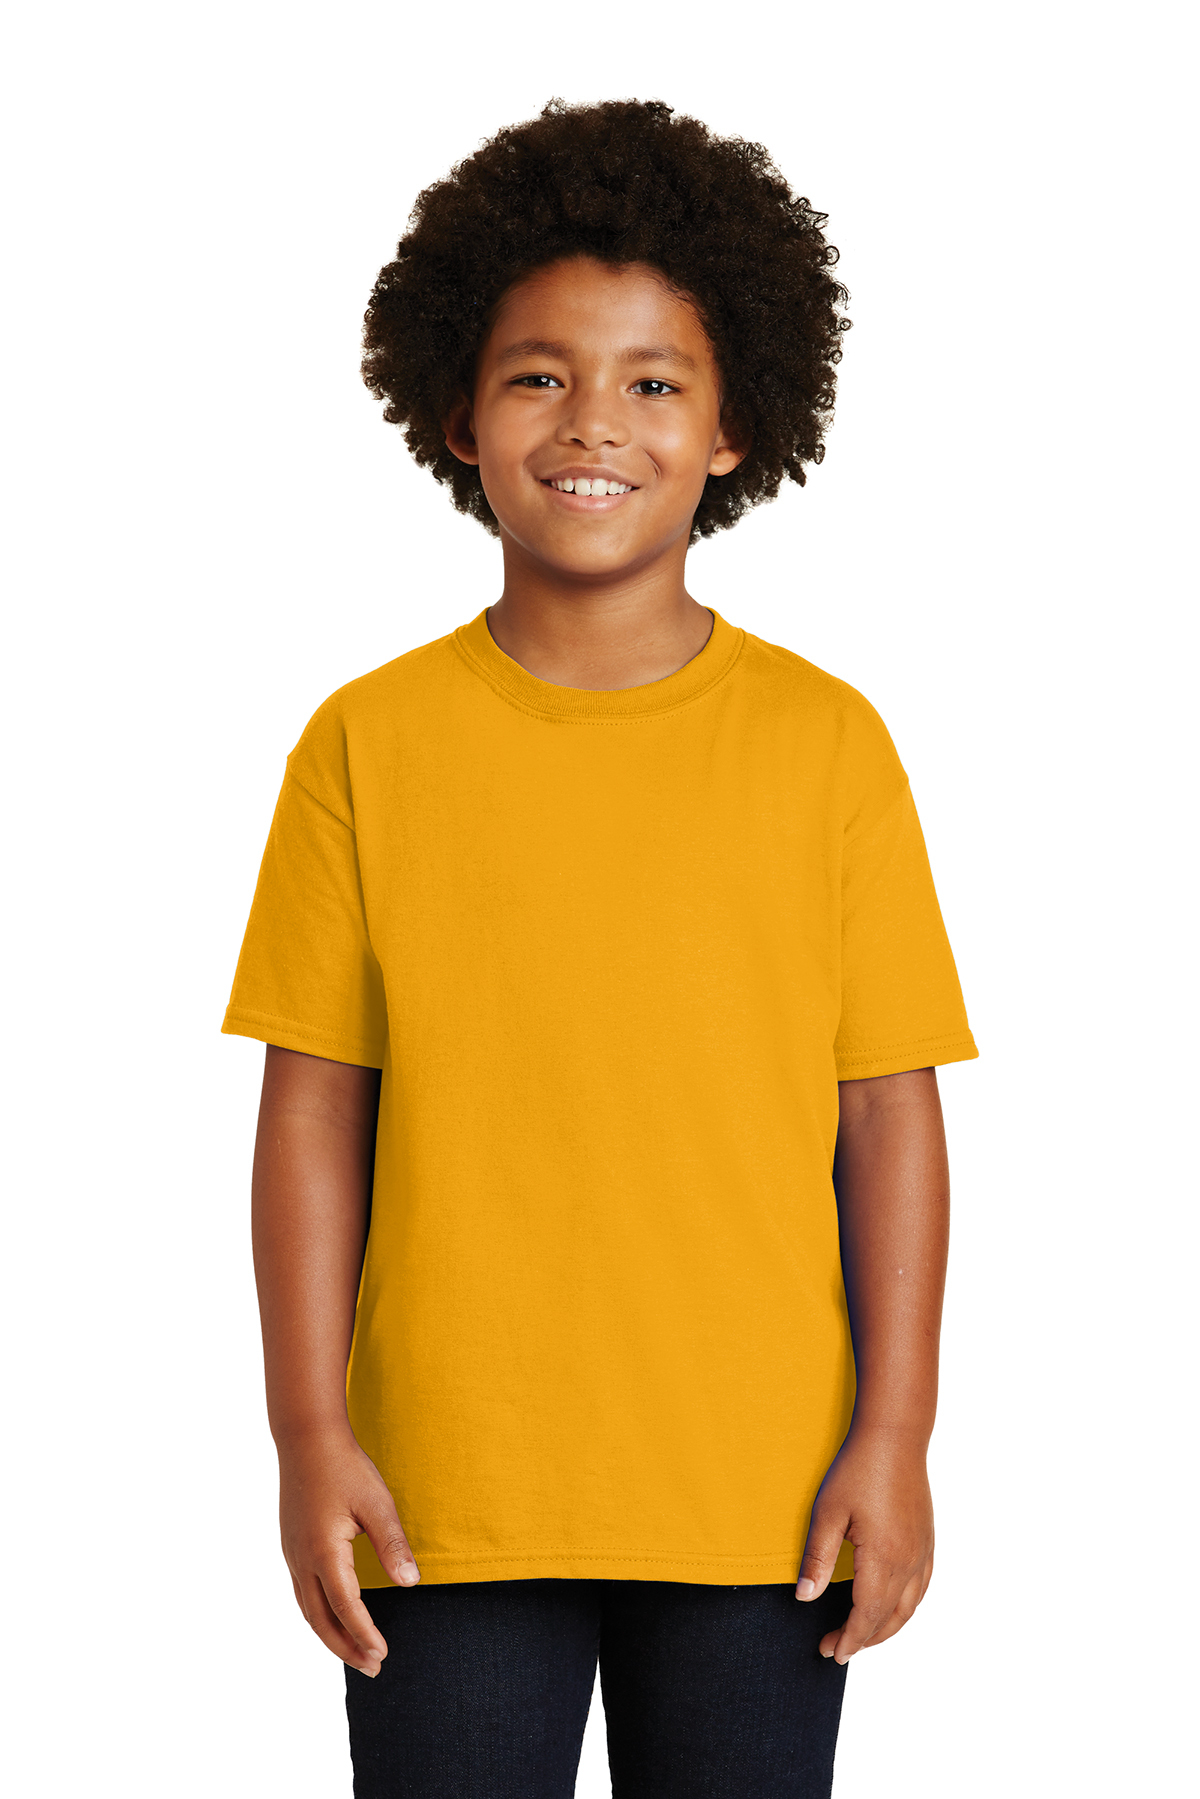 Gildan Youth Ultra Cotton 100 Cotton T Shirt 6 61 100